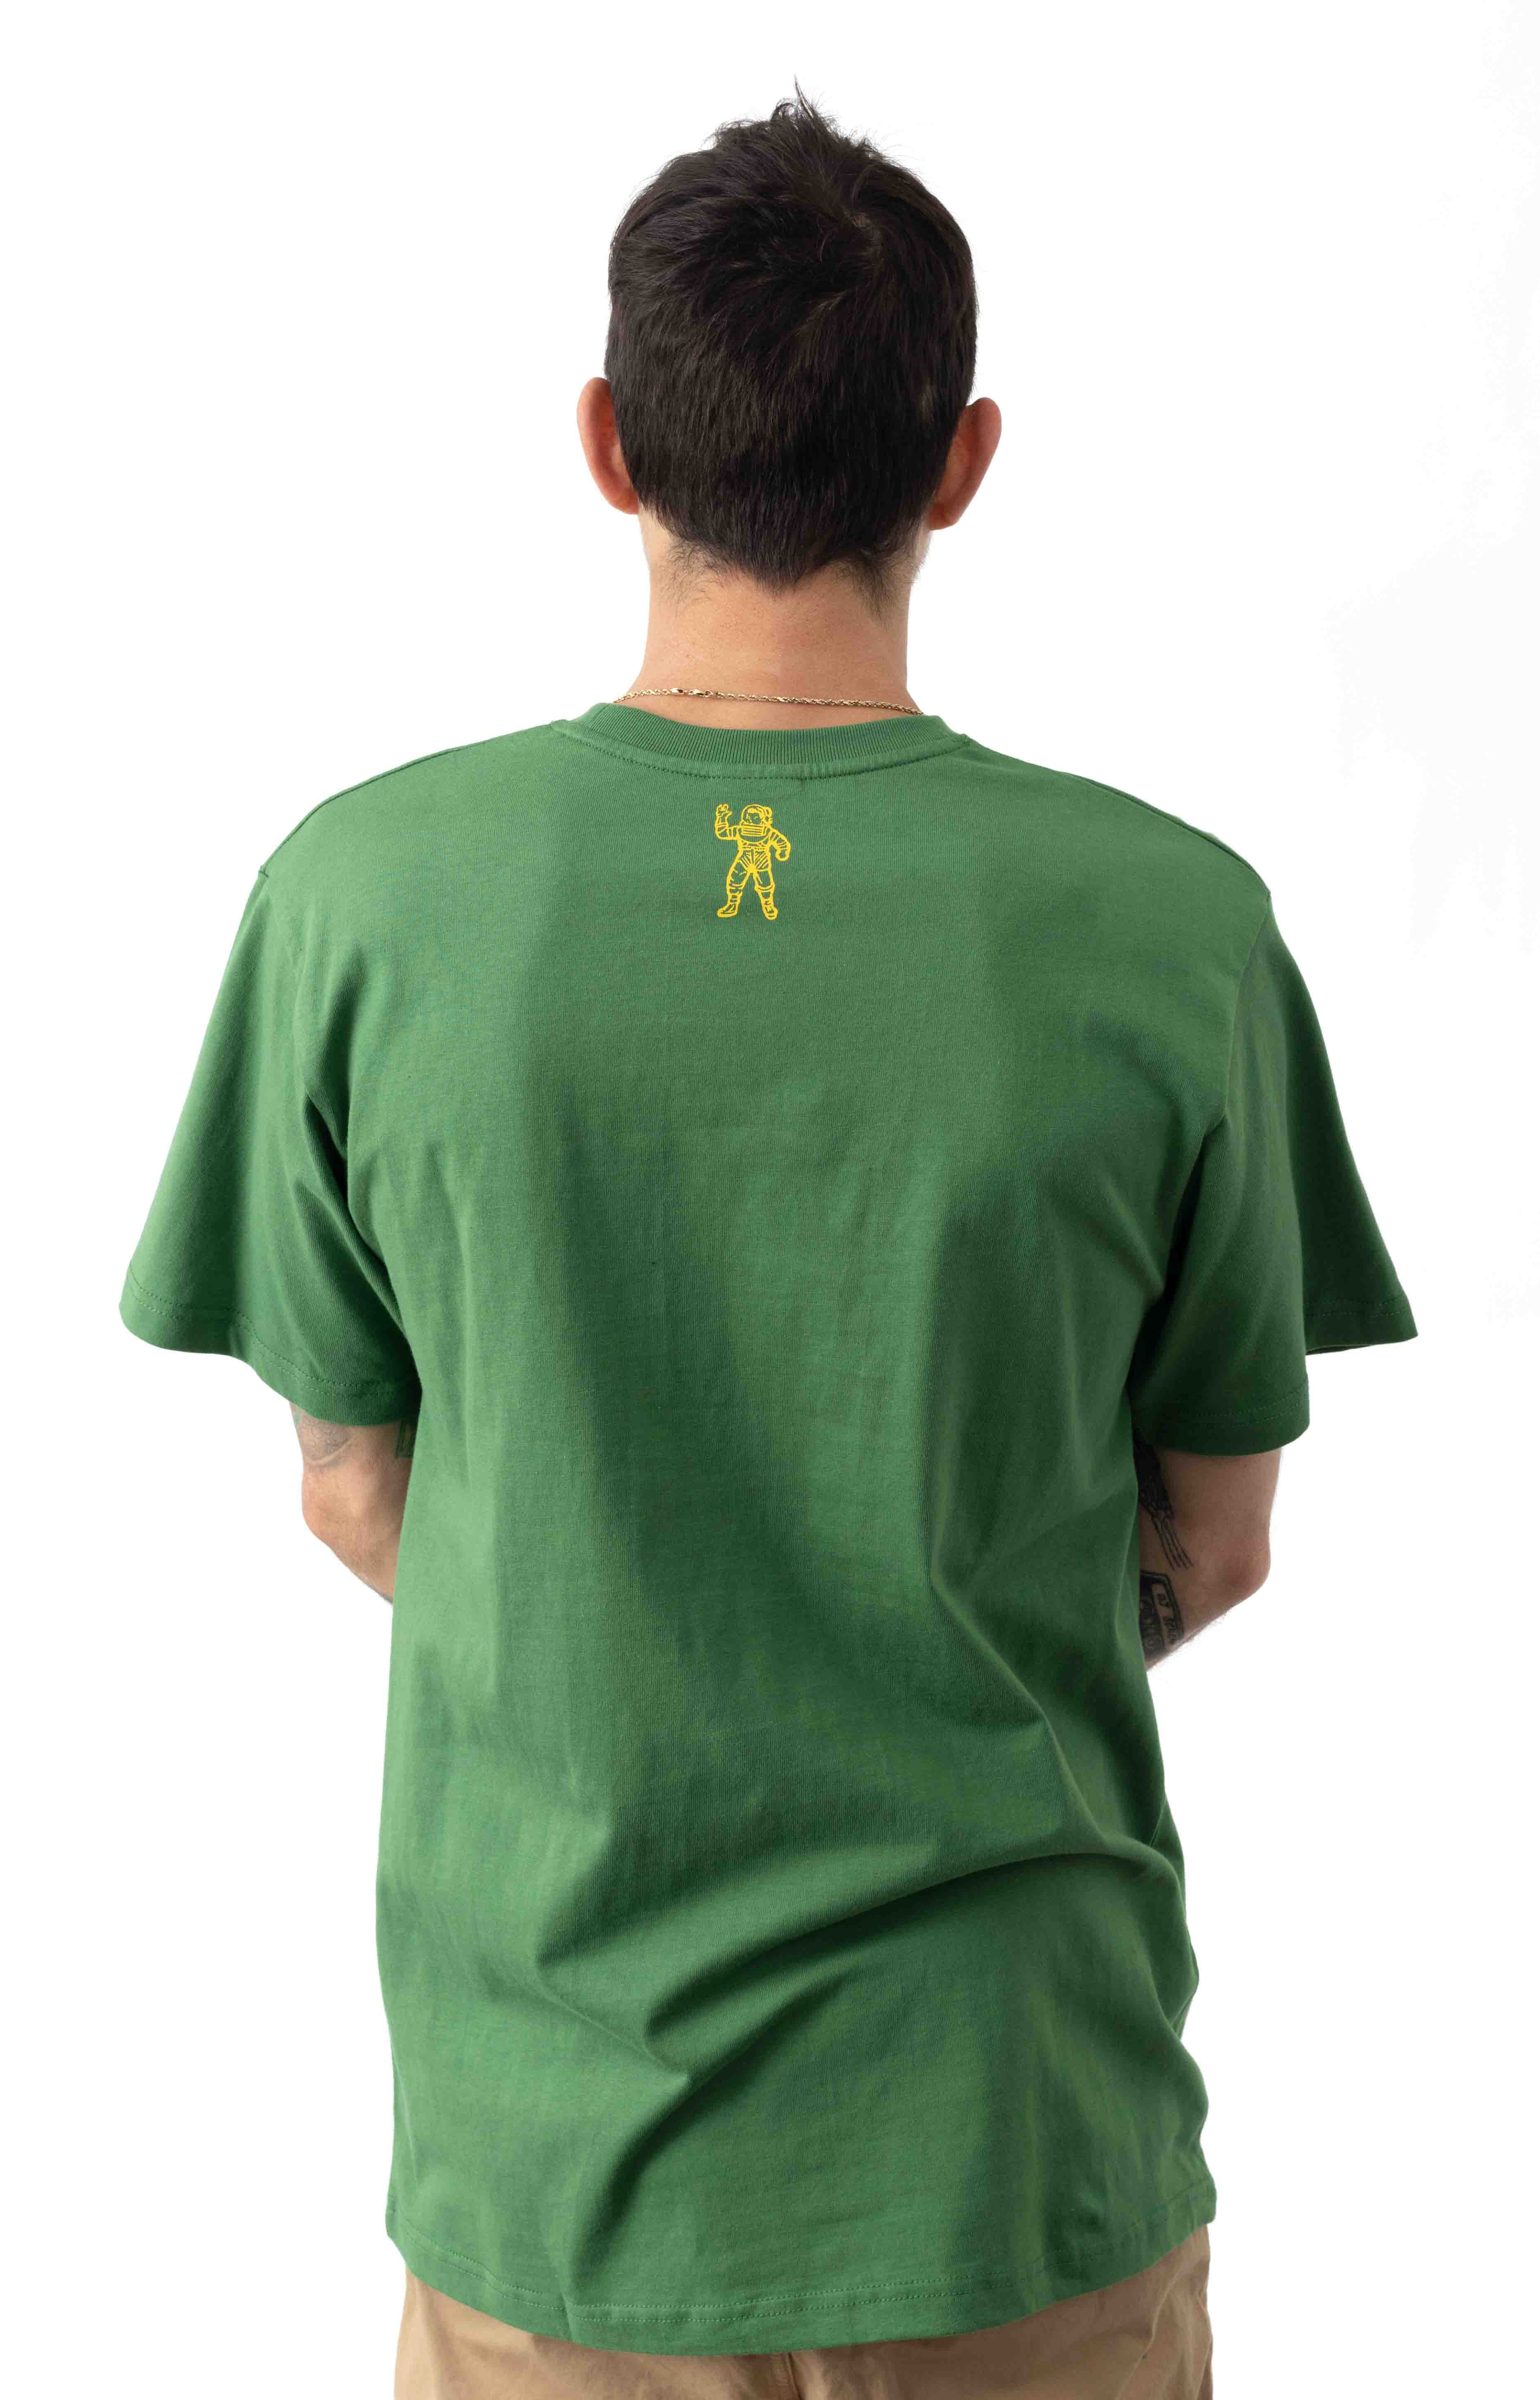 BB Open Trail T-Shirt - Willow Bough 3